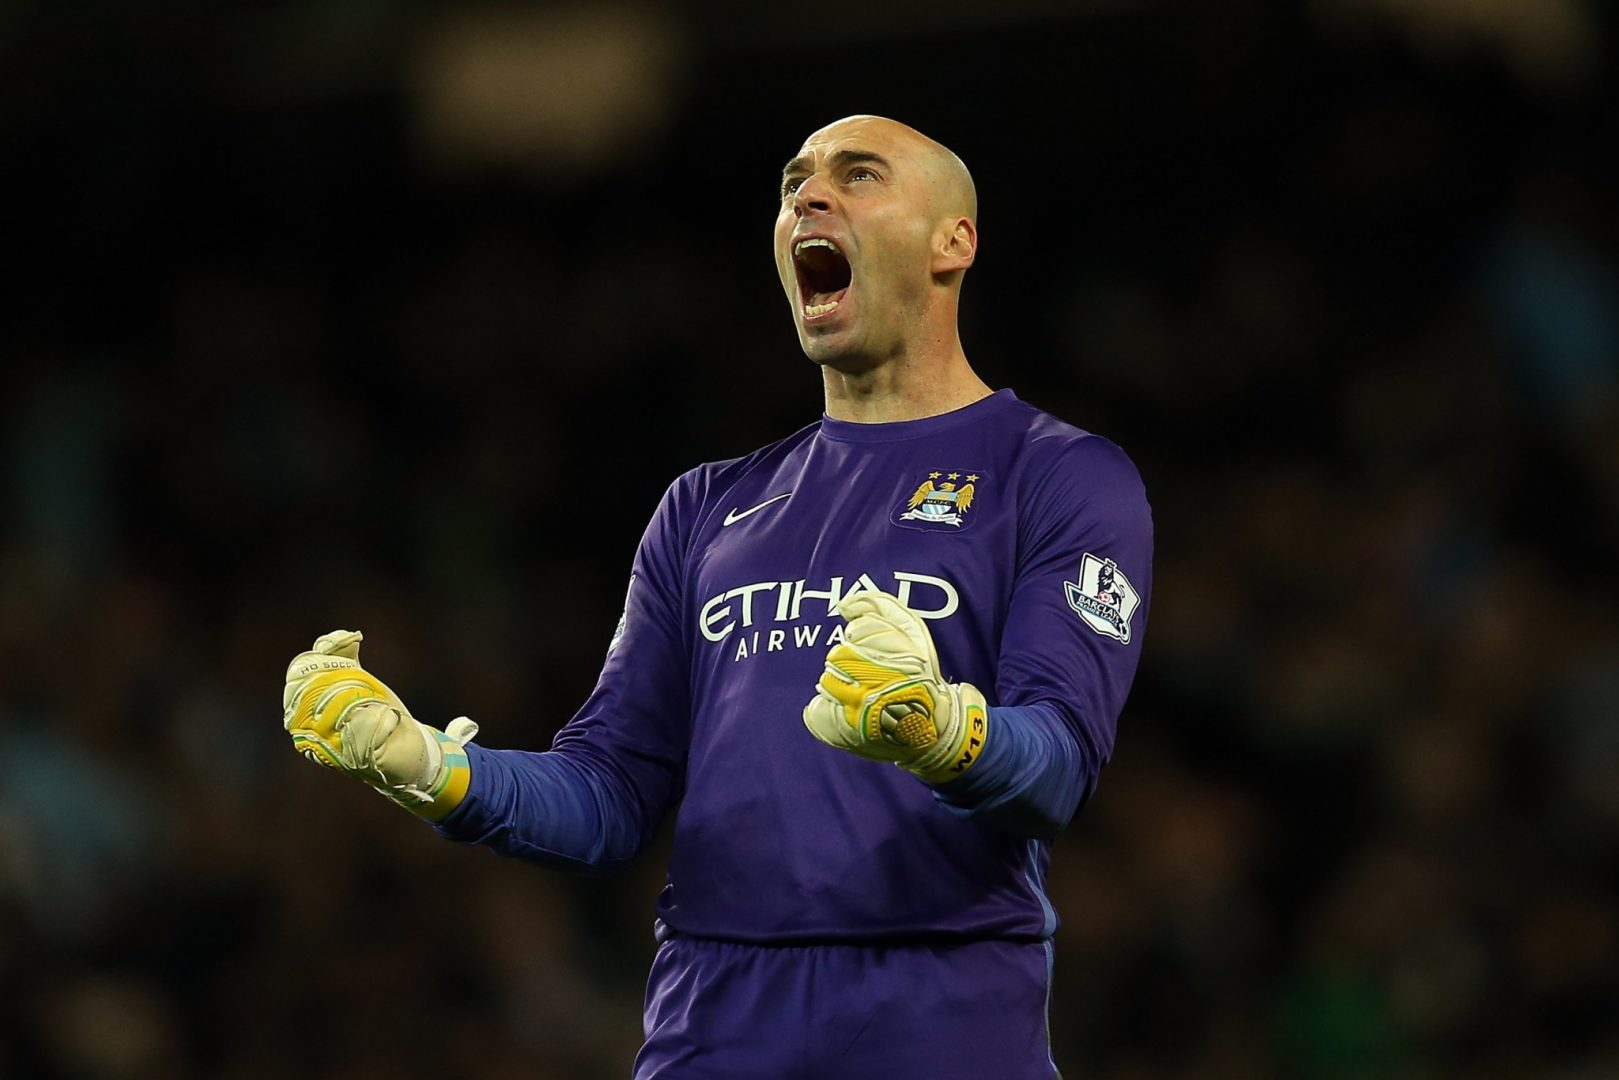 Willy Cabellero celebrating a Manchester City goal.